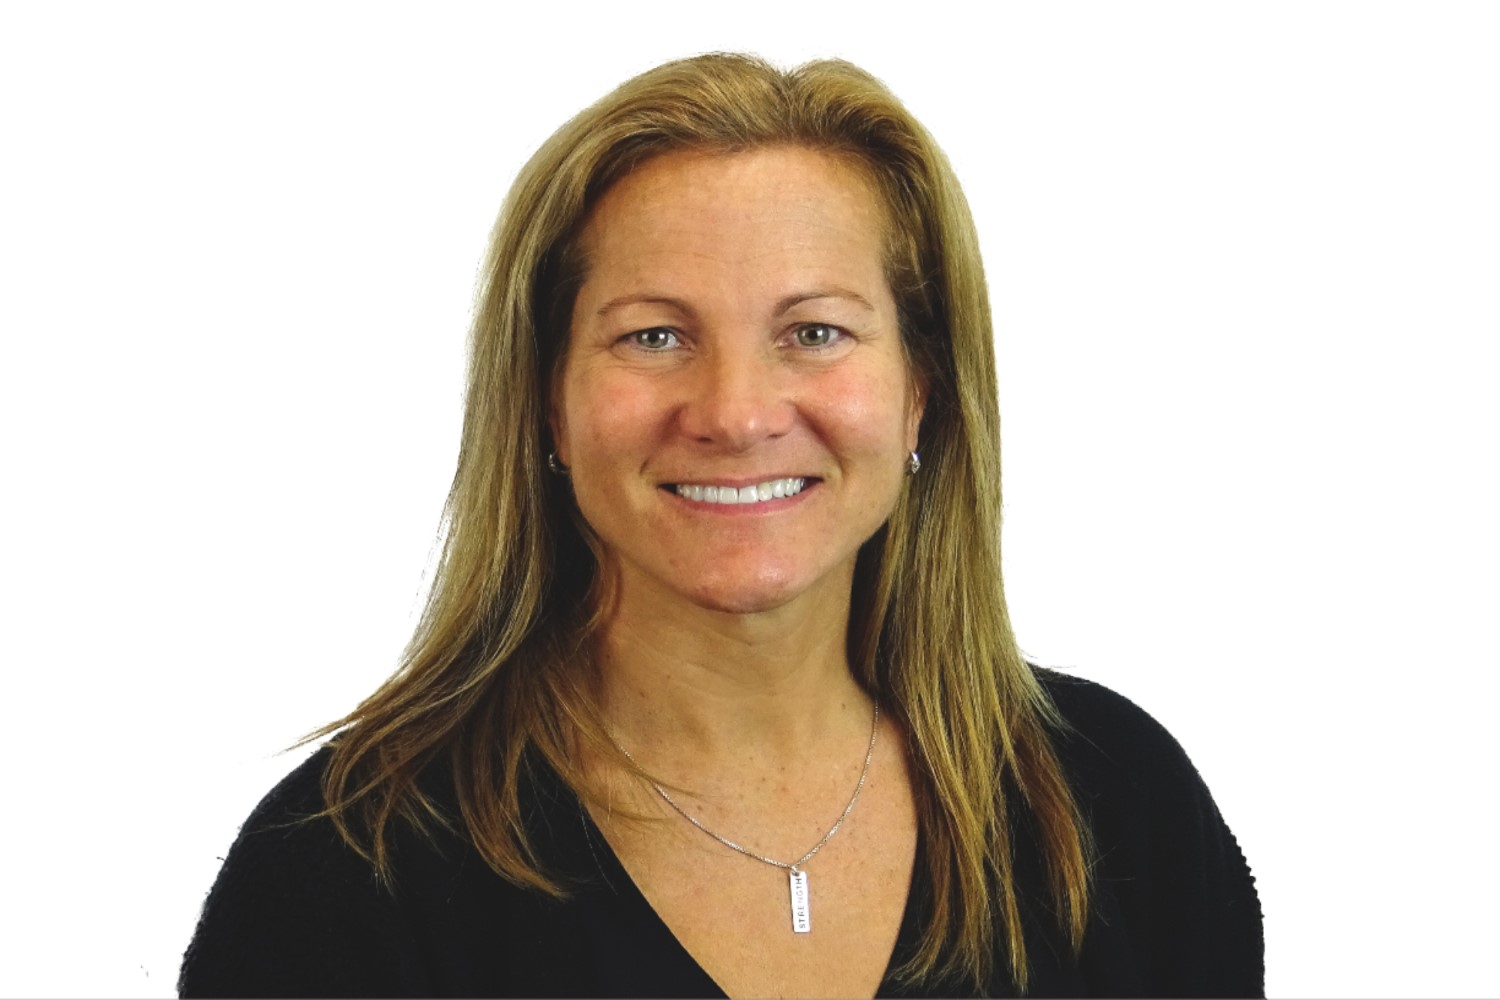 Land home financial services, inc. announces new vp of strategic initiatives